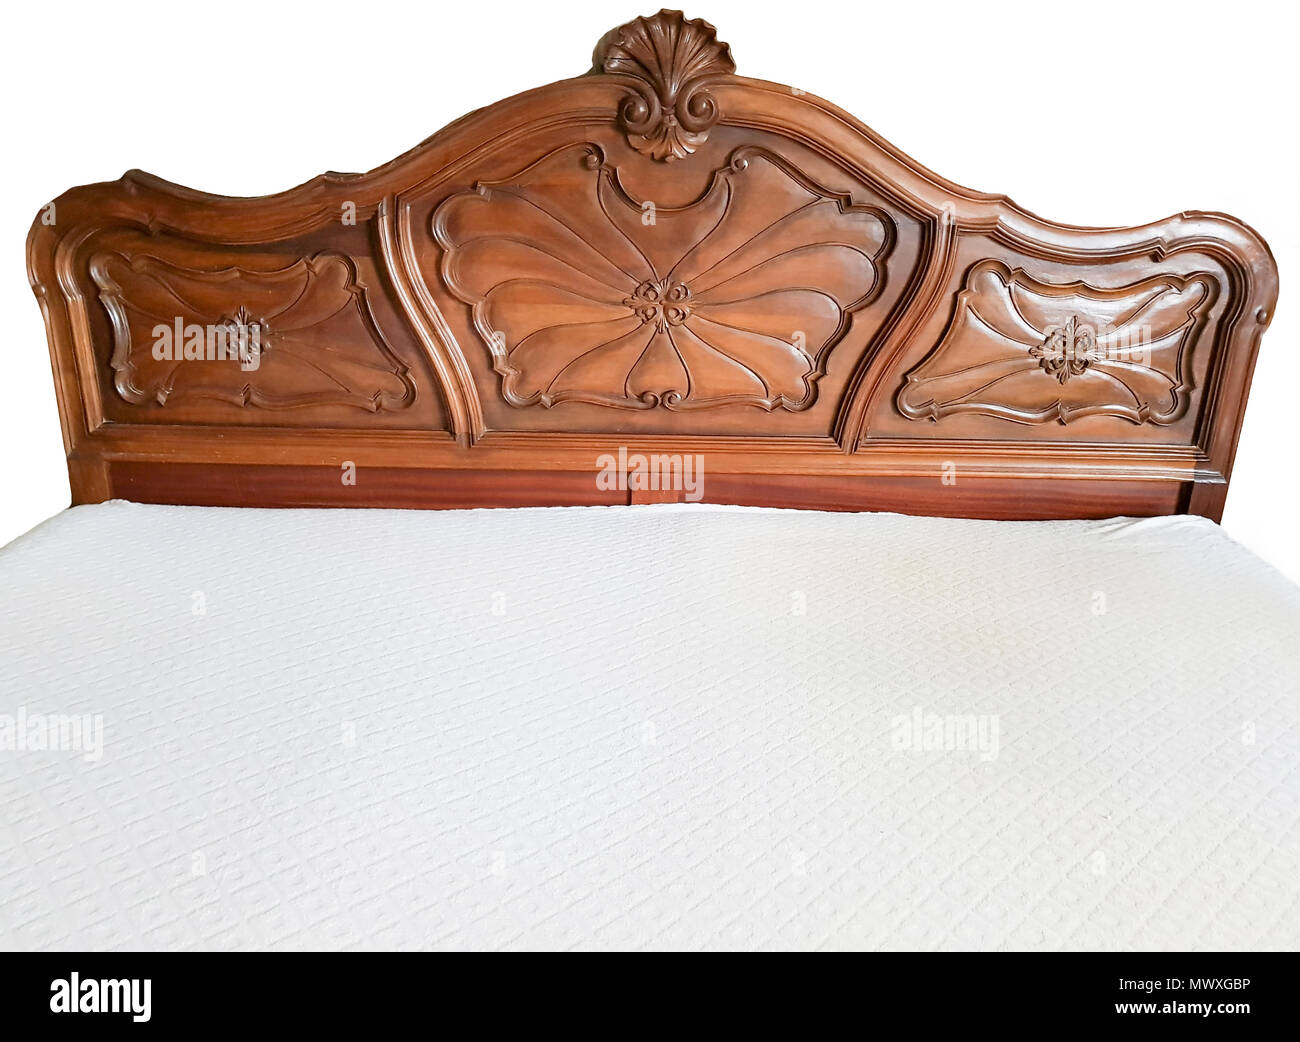 Wood Bed Vintage High Resolution Stock Photography And Images Alamy